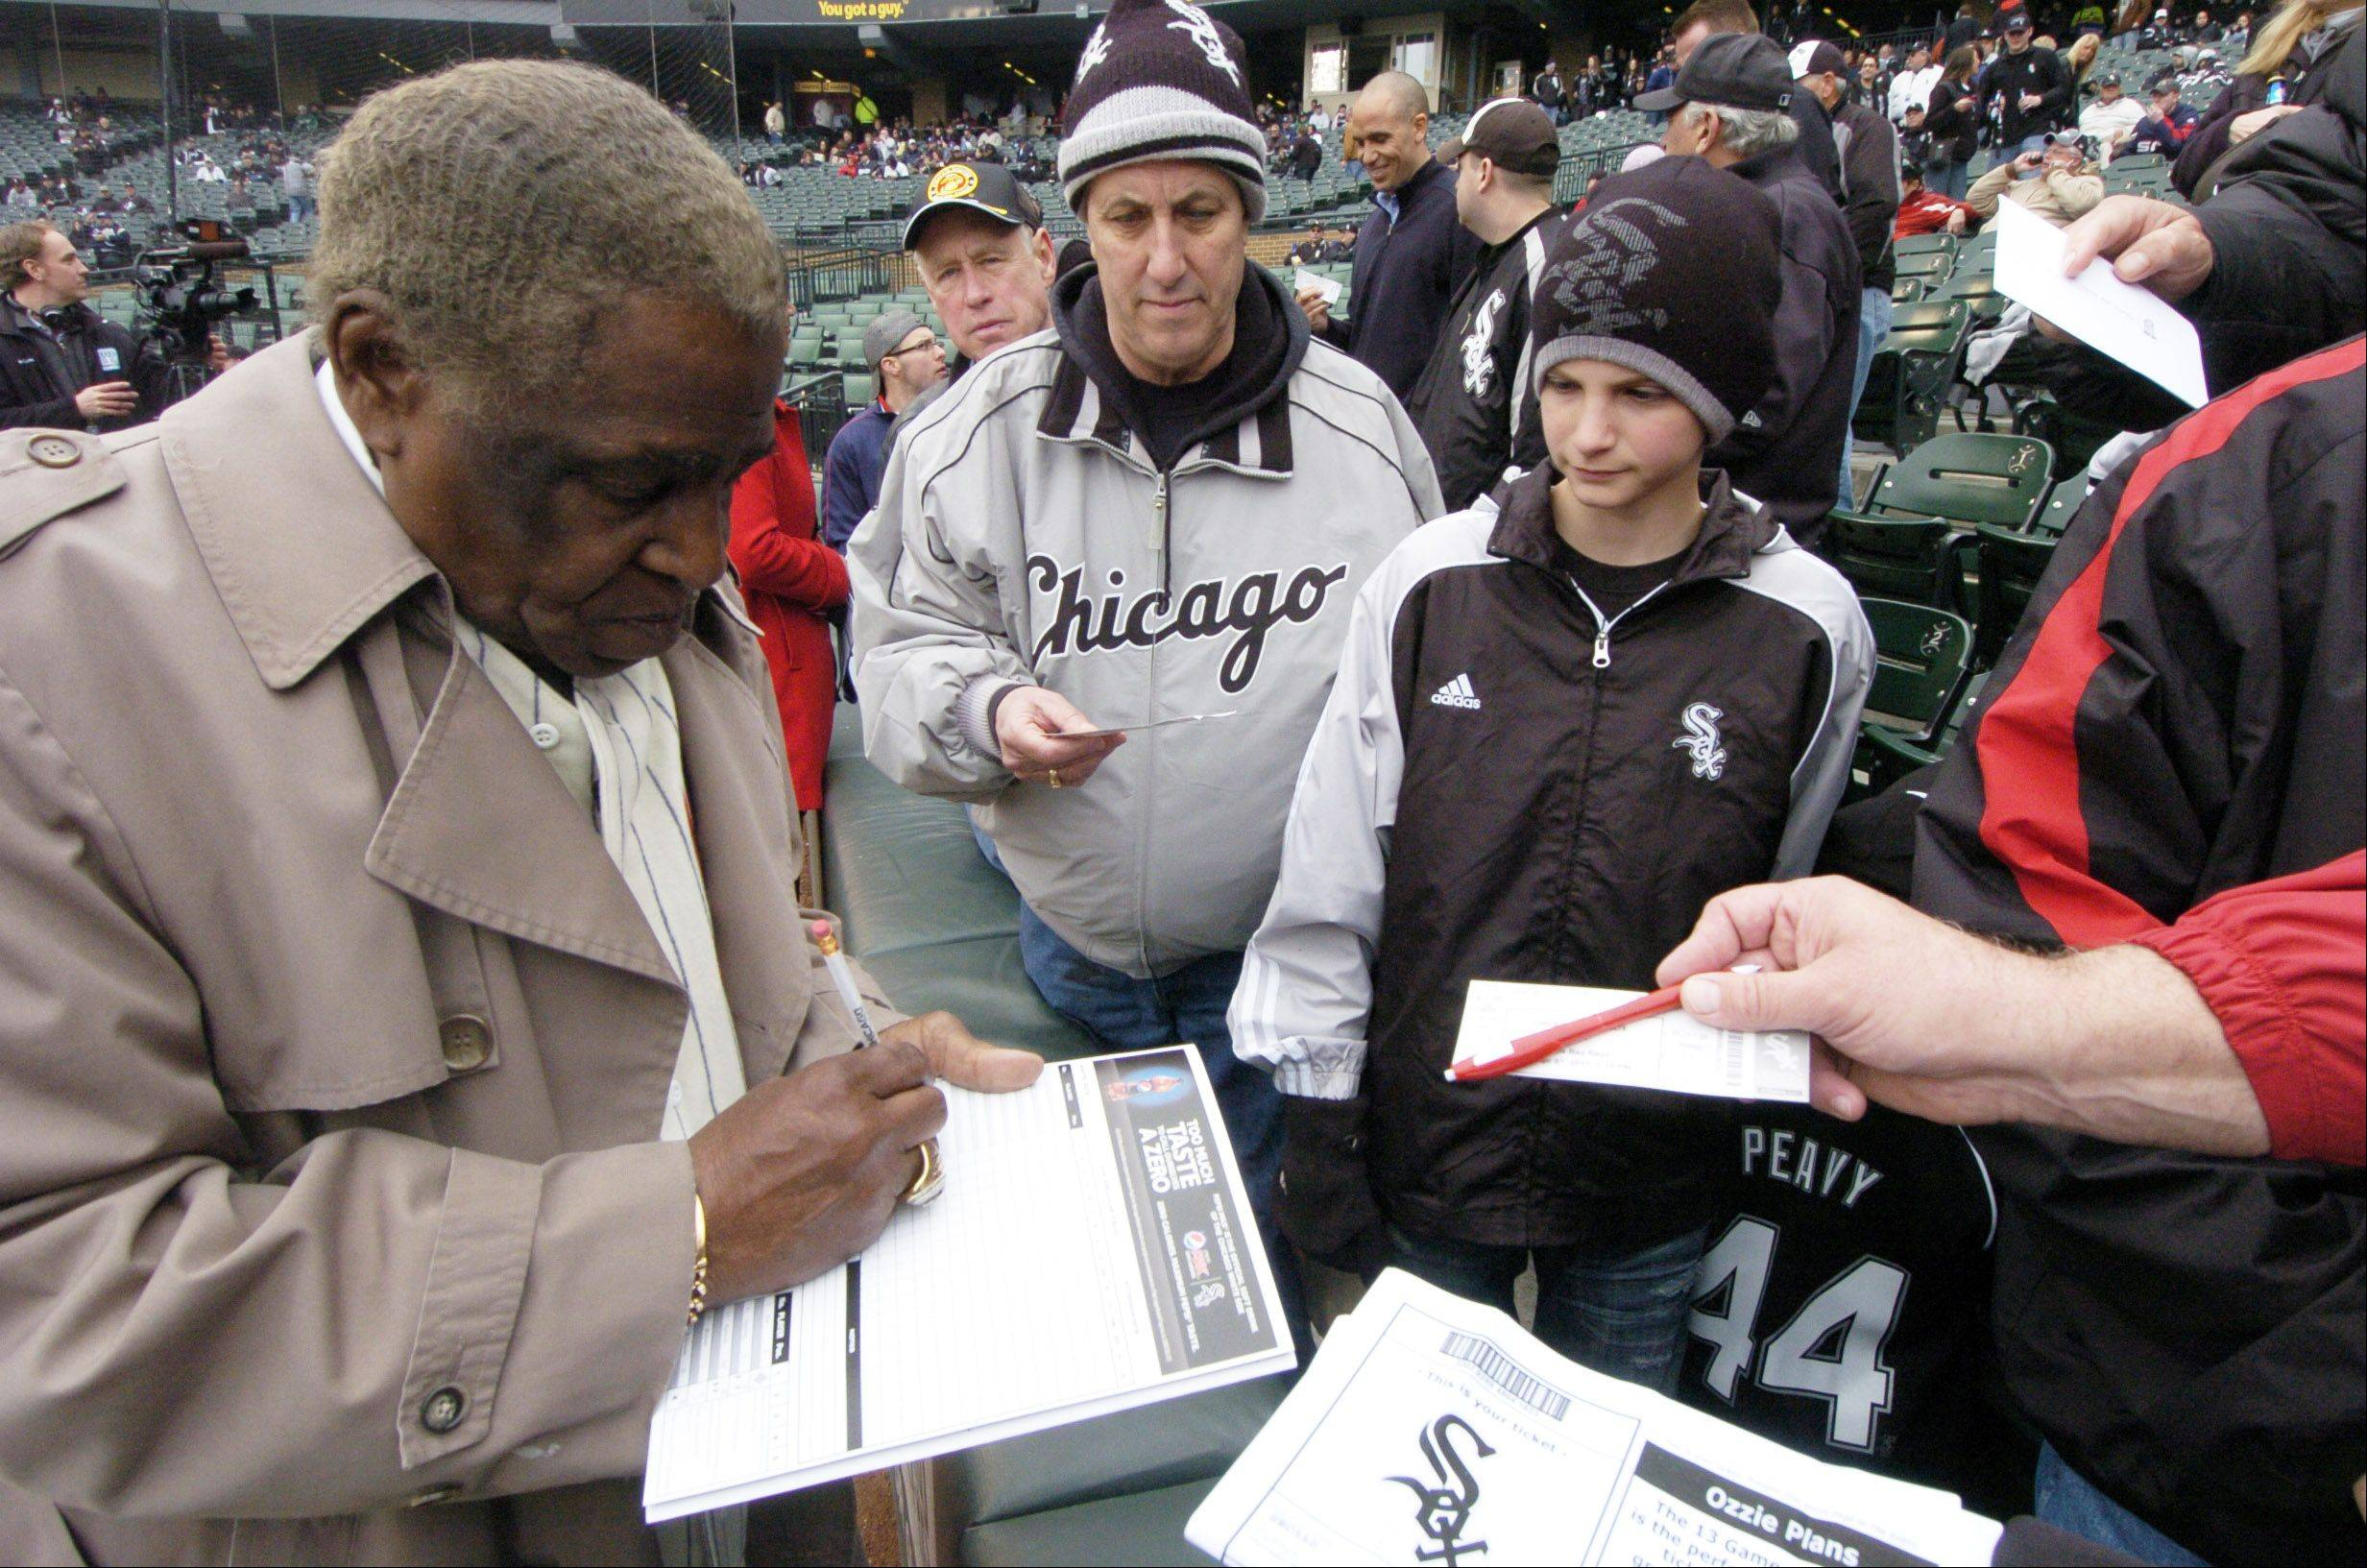 White Sox legend Minnie Minoso, left, is expected to attend an event in Chicago on Tuesday to unveil the new White Sox permanent Illinois license plate.